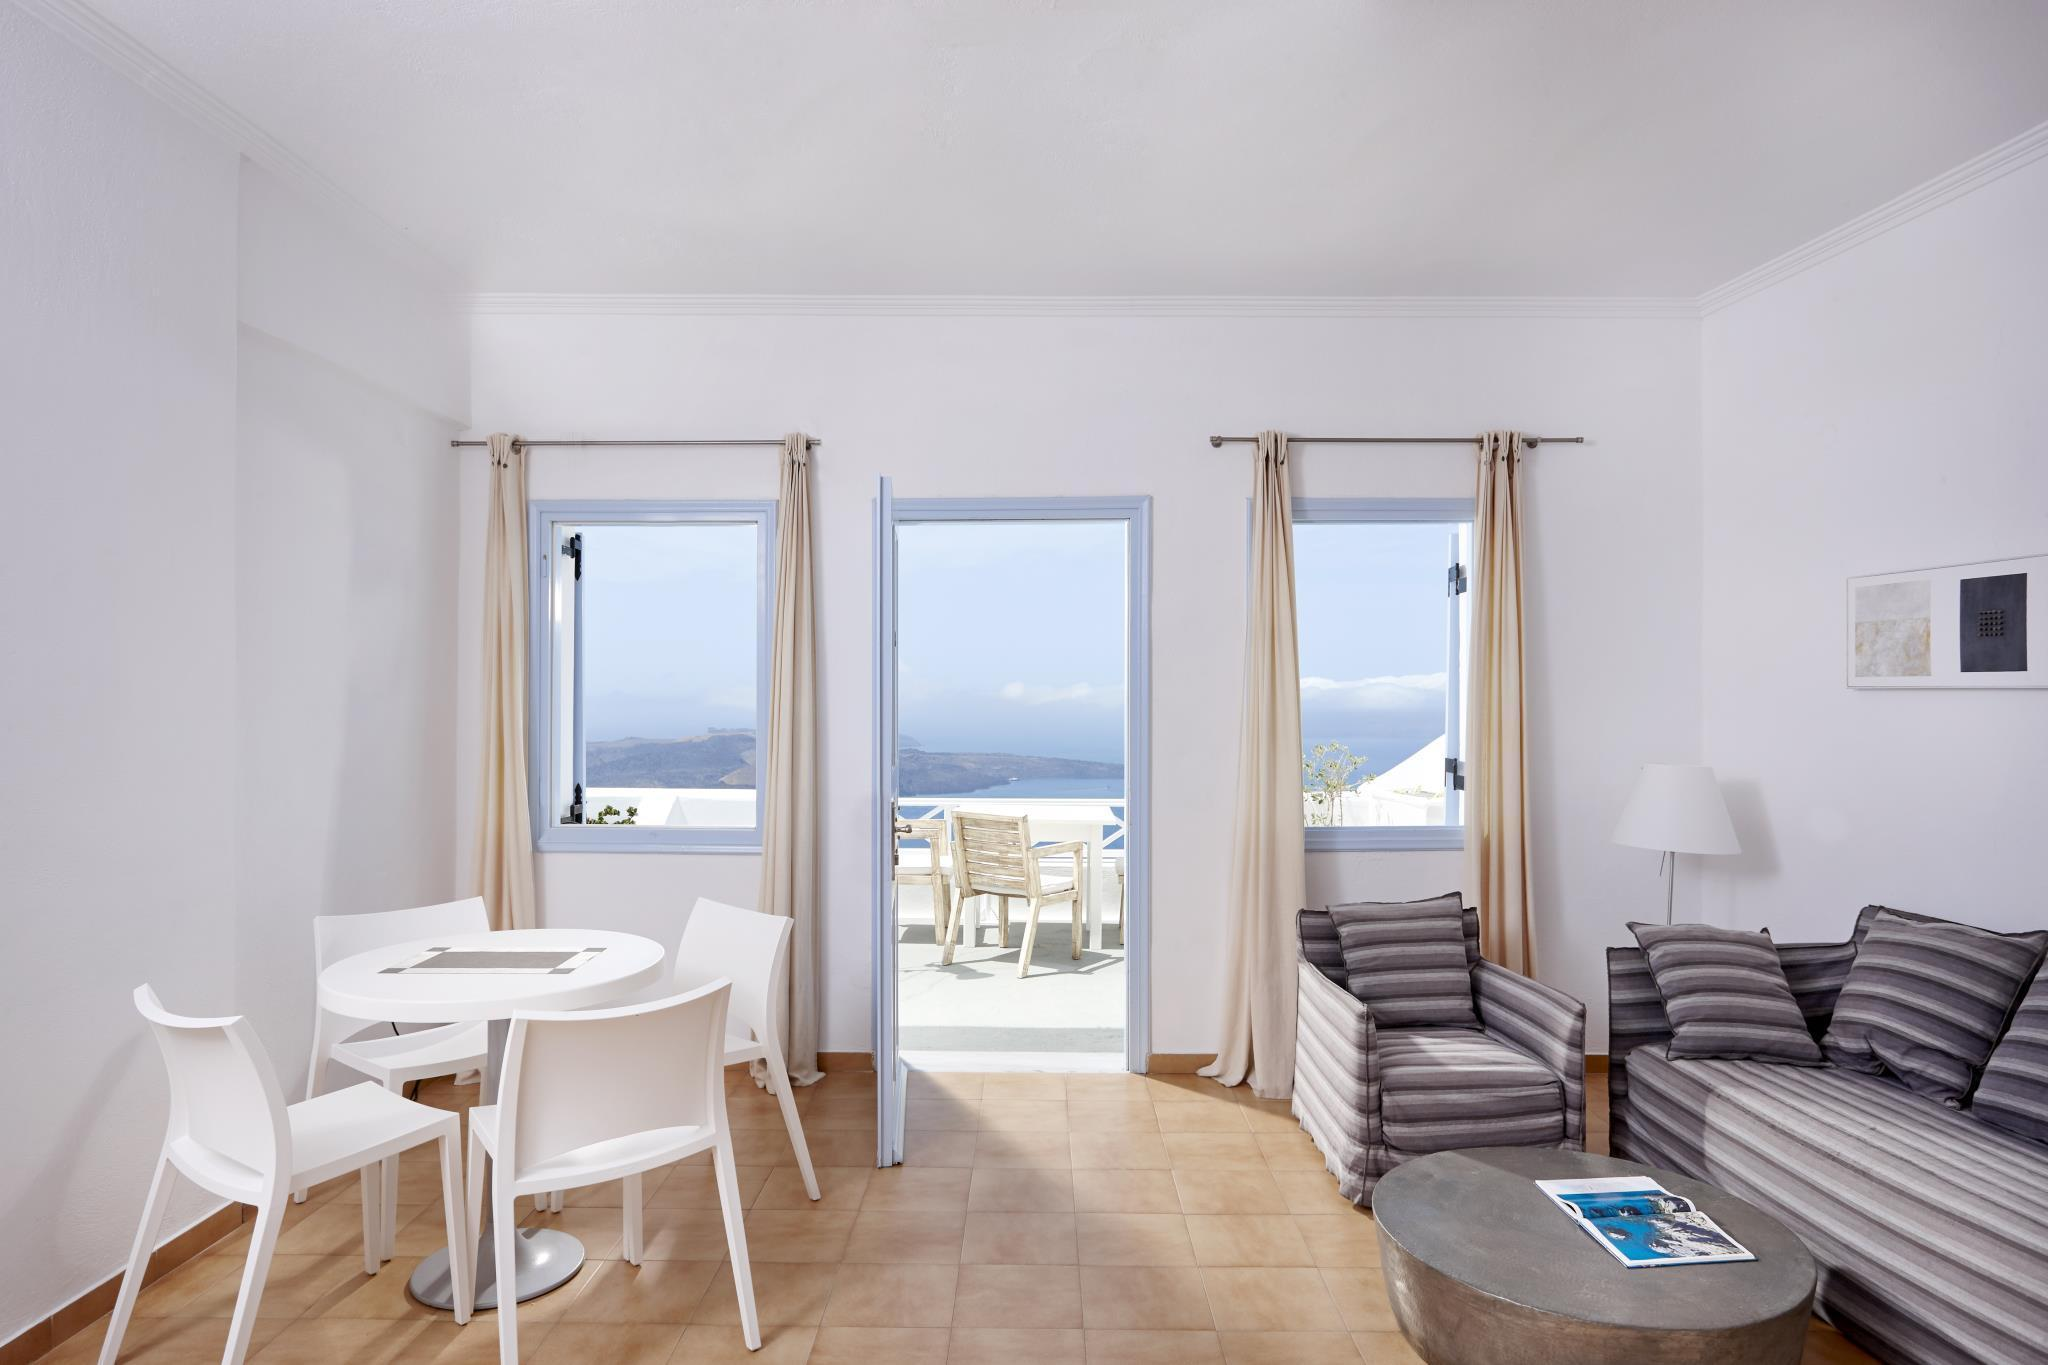 Suite Vista Mar (Suite Sea View)